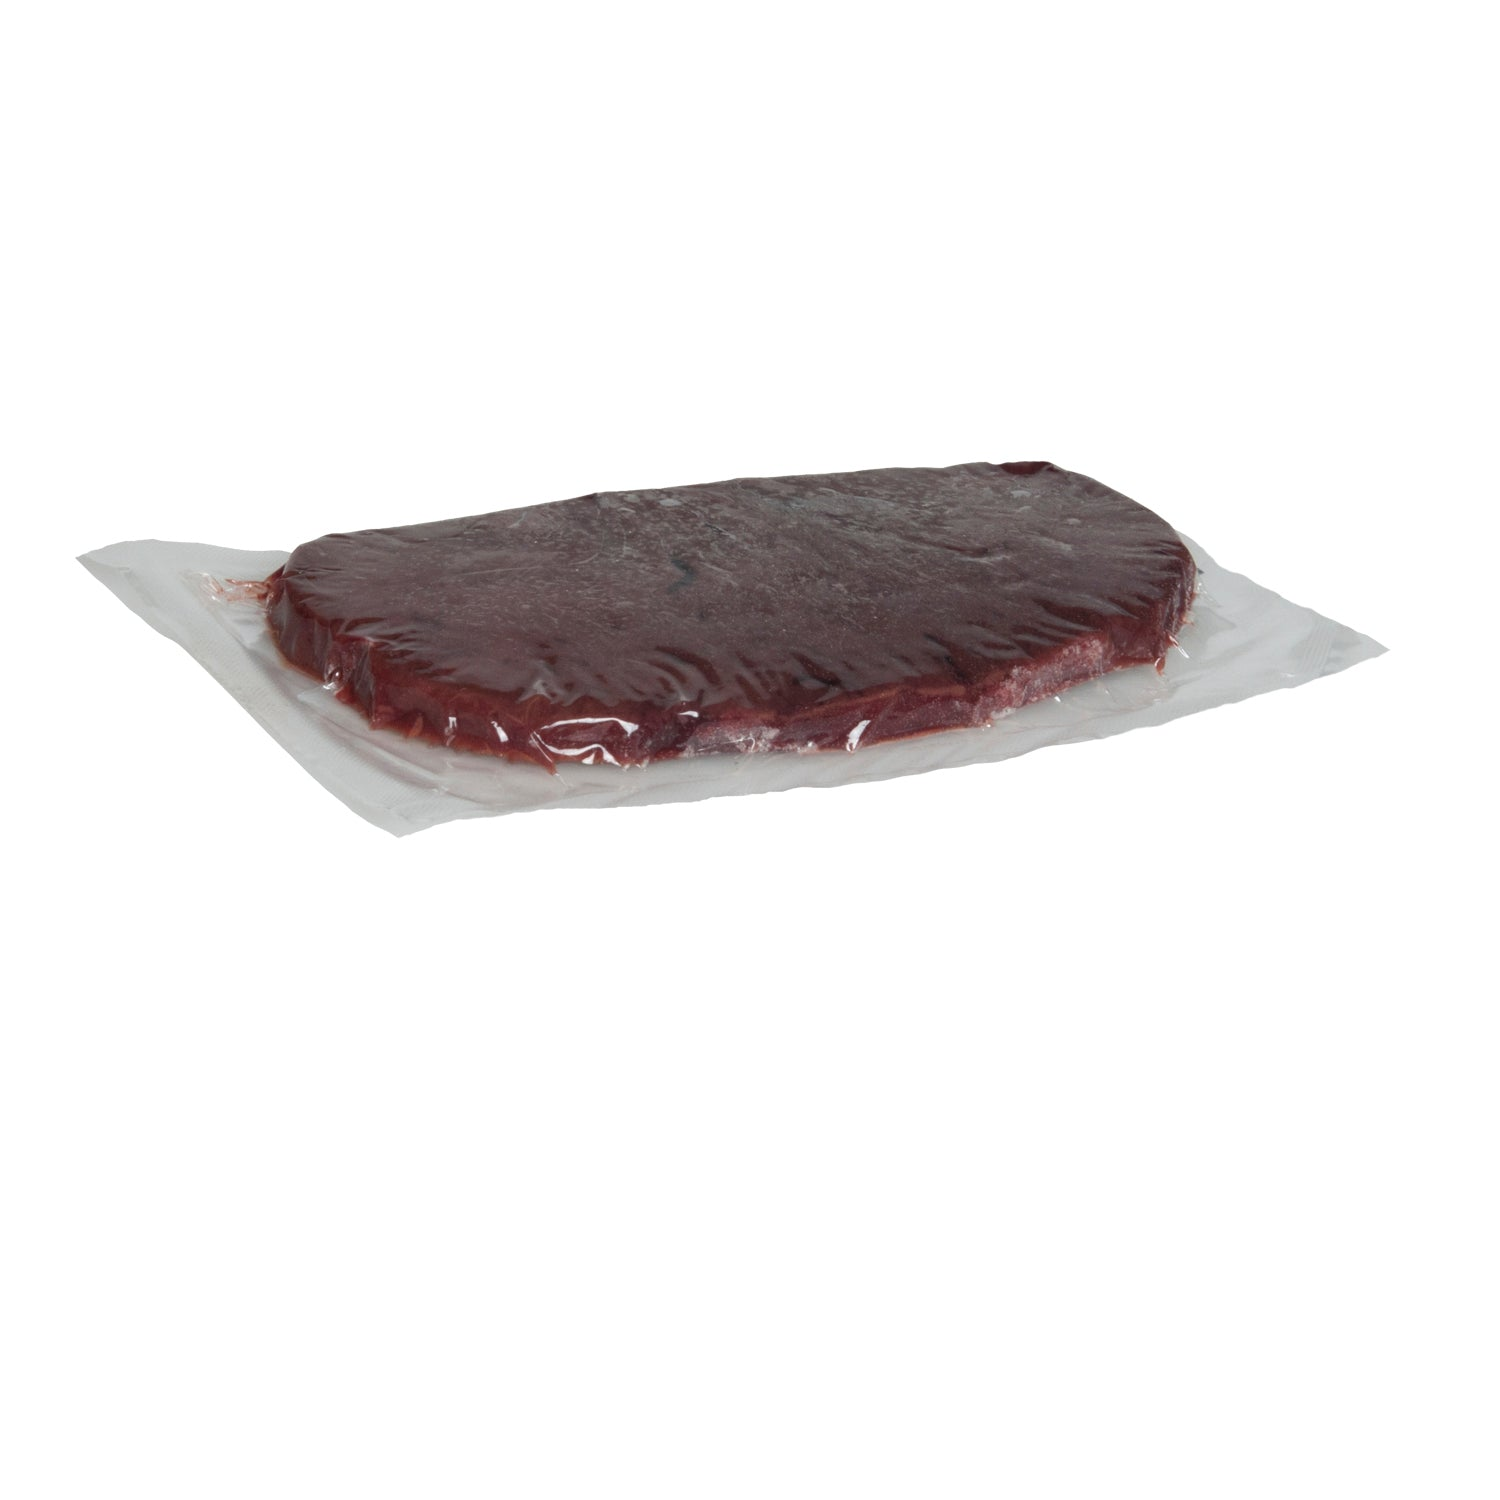 Sysco Classic Individually Frozen Sliced Beef Liver 4 oz - 40 Pack [$1.22/each]